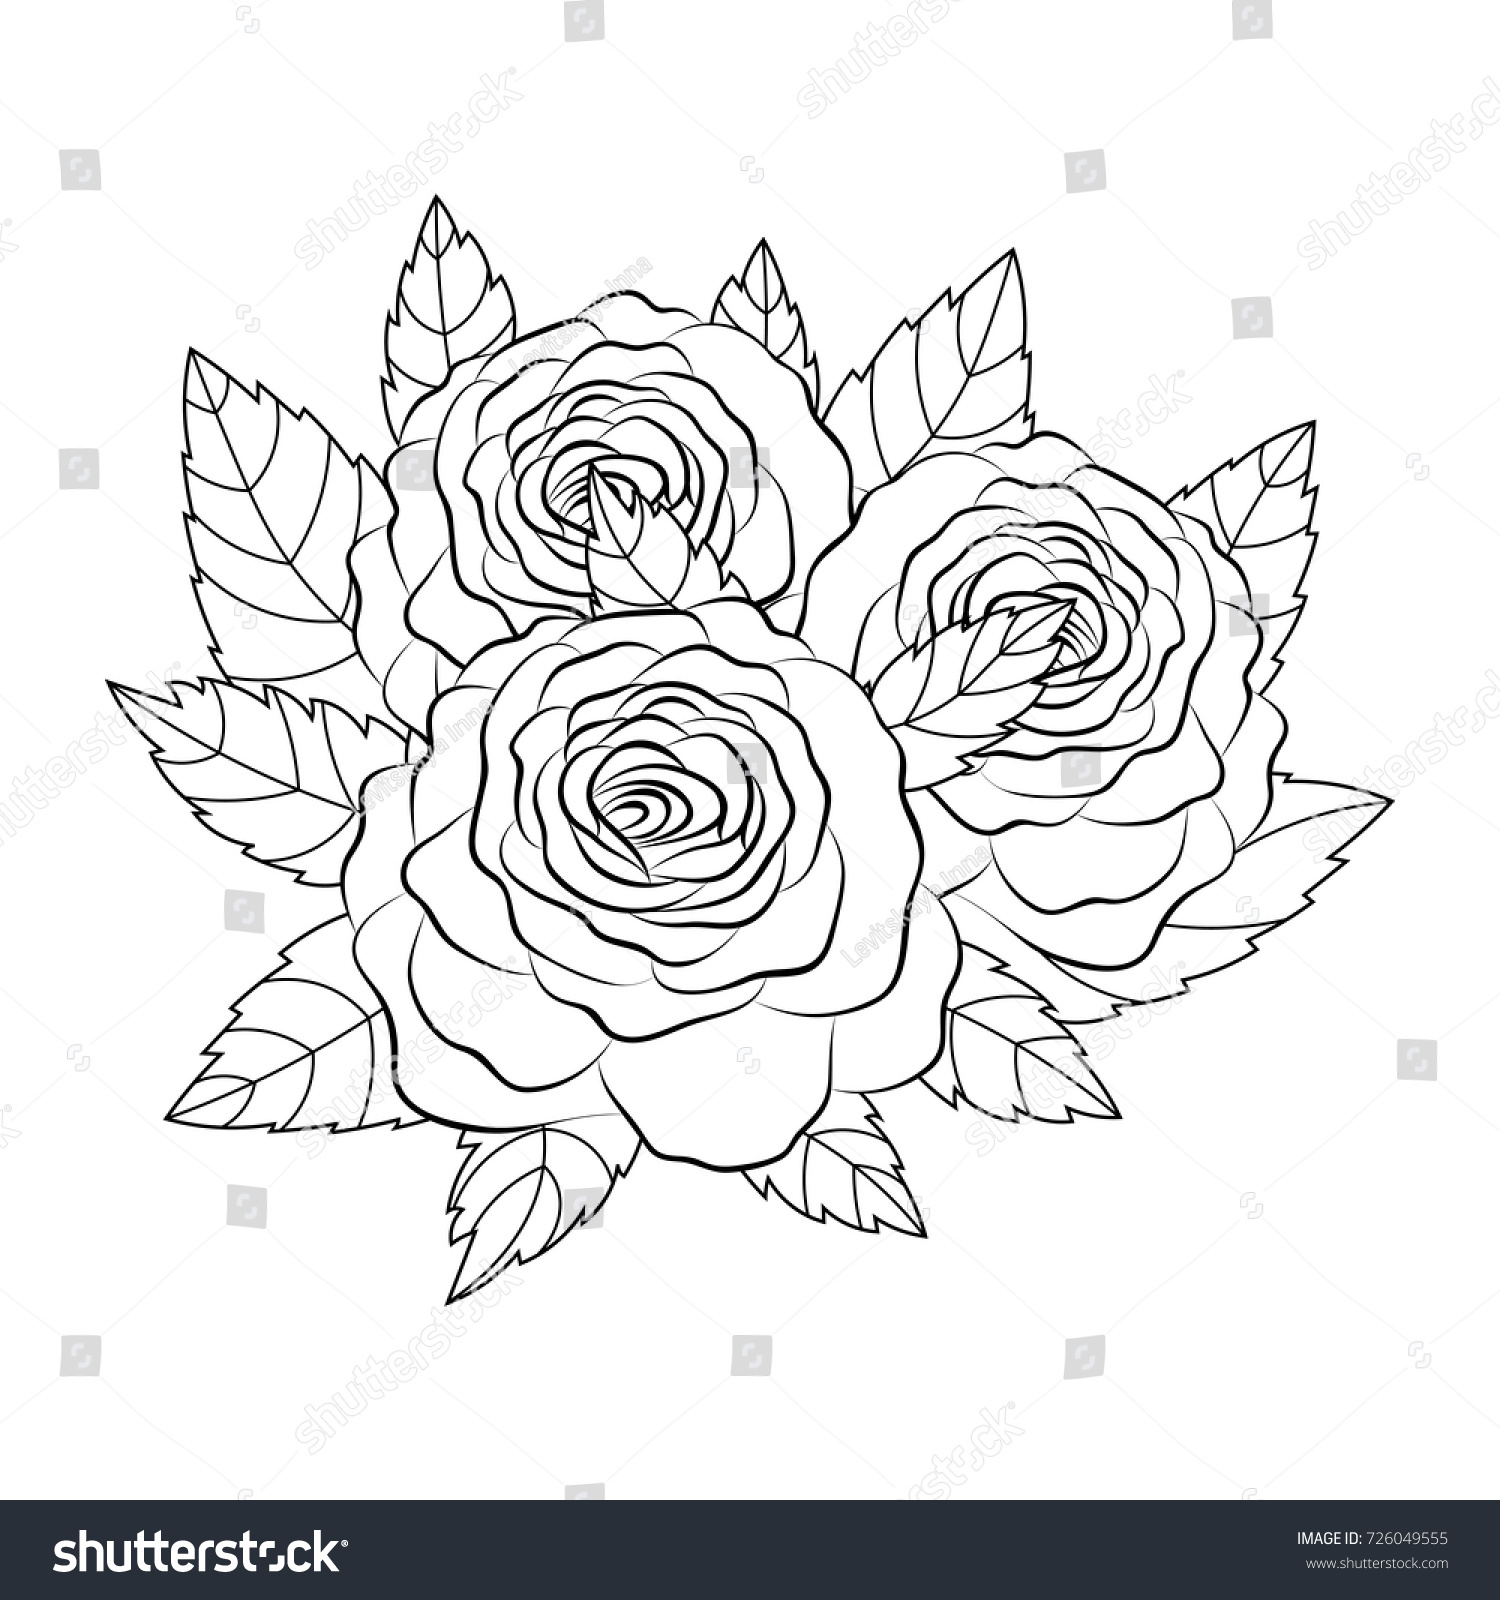 Sketch rose flower pencil sketch flowers with leaves on stem hand drawn contour